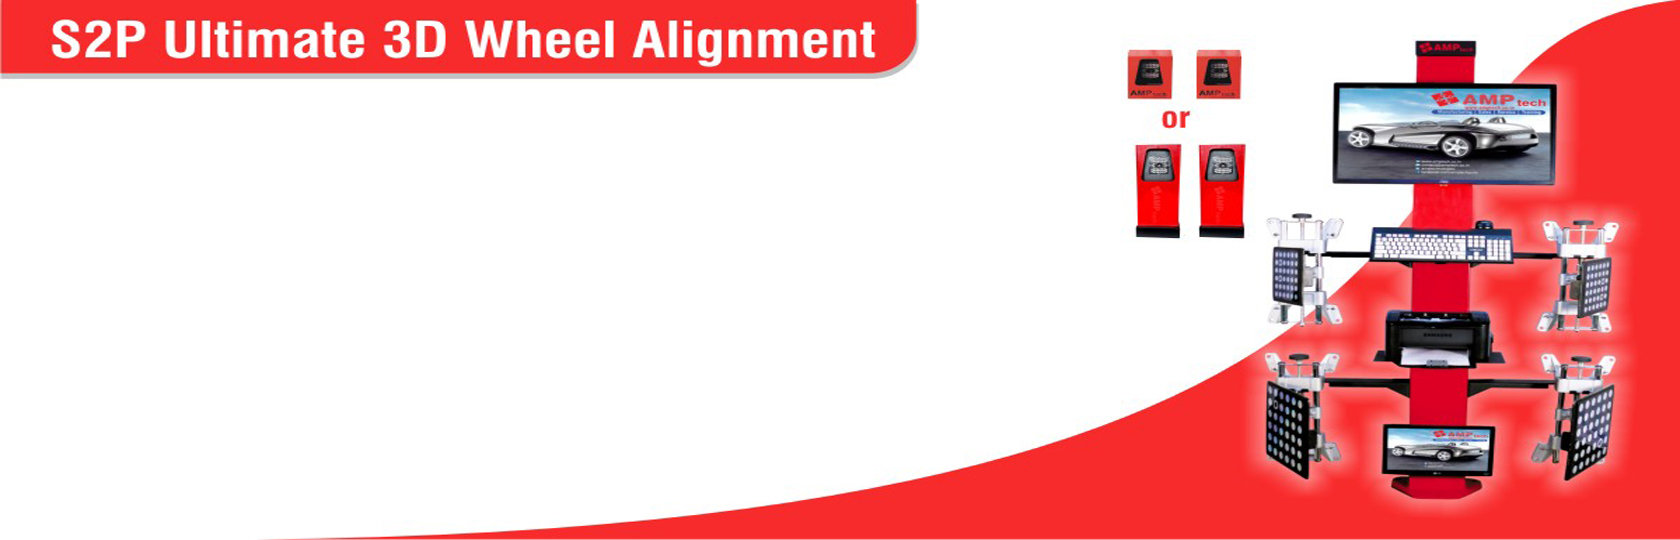 S2P-3D-wheel-alignment